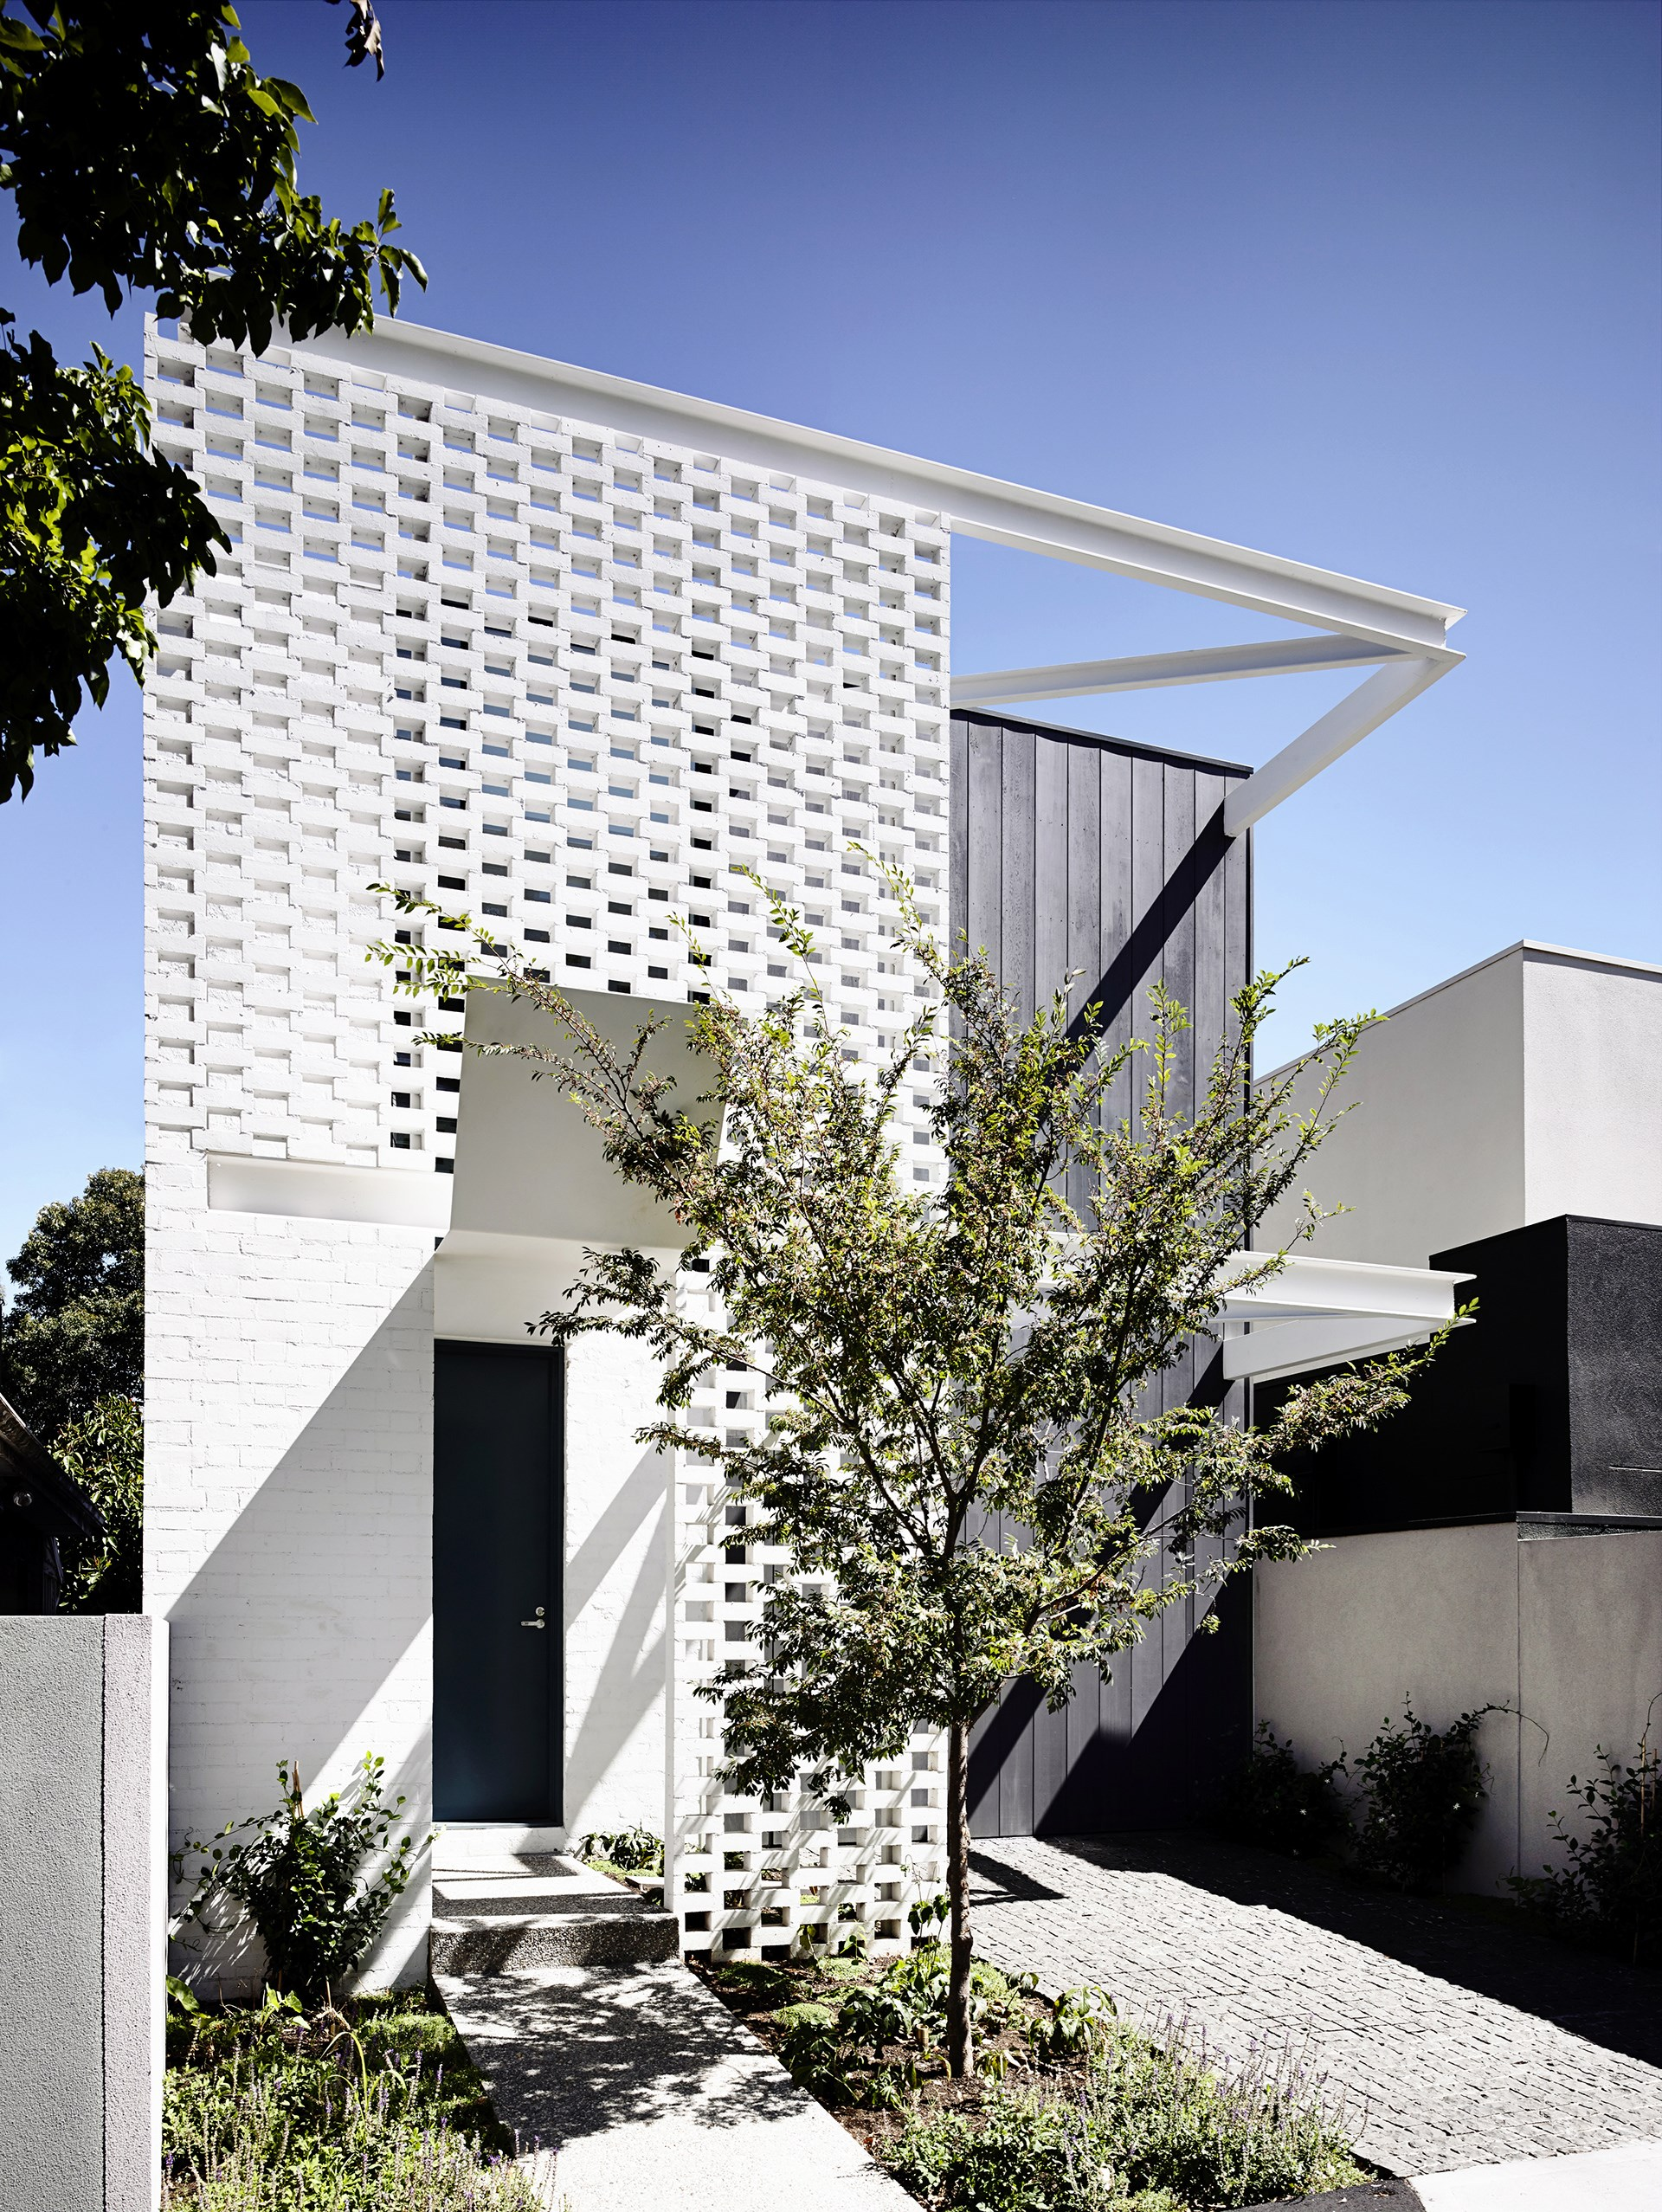 "The punctured brick screen at the front of this house creates depth: ""Its partial concealment hints at the home's inner workings, creating a feeling of mounting suspense,"" says architect Charlie Inglis of [Inglis Architects](http://inglisarchitects.com/). See more of this [luxury brick and steel architectural feat](http://www.homestolove.com.au/a-luxury-brick-and-steel-architectural-feat-2453). Photo: Derek Swalwell / *Belle*"